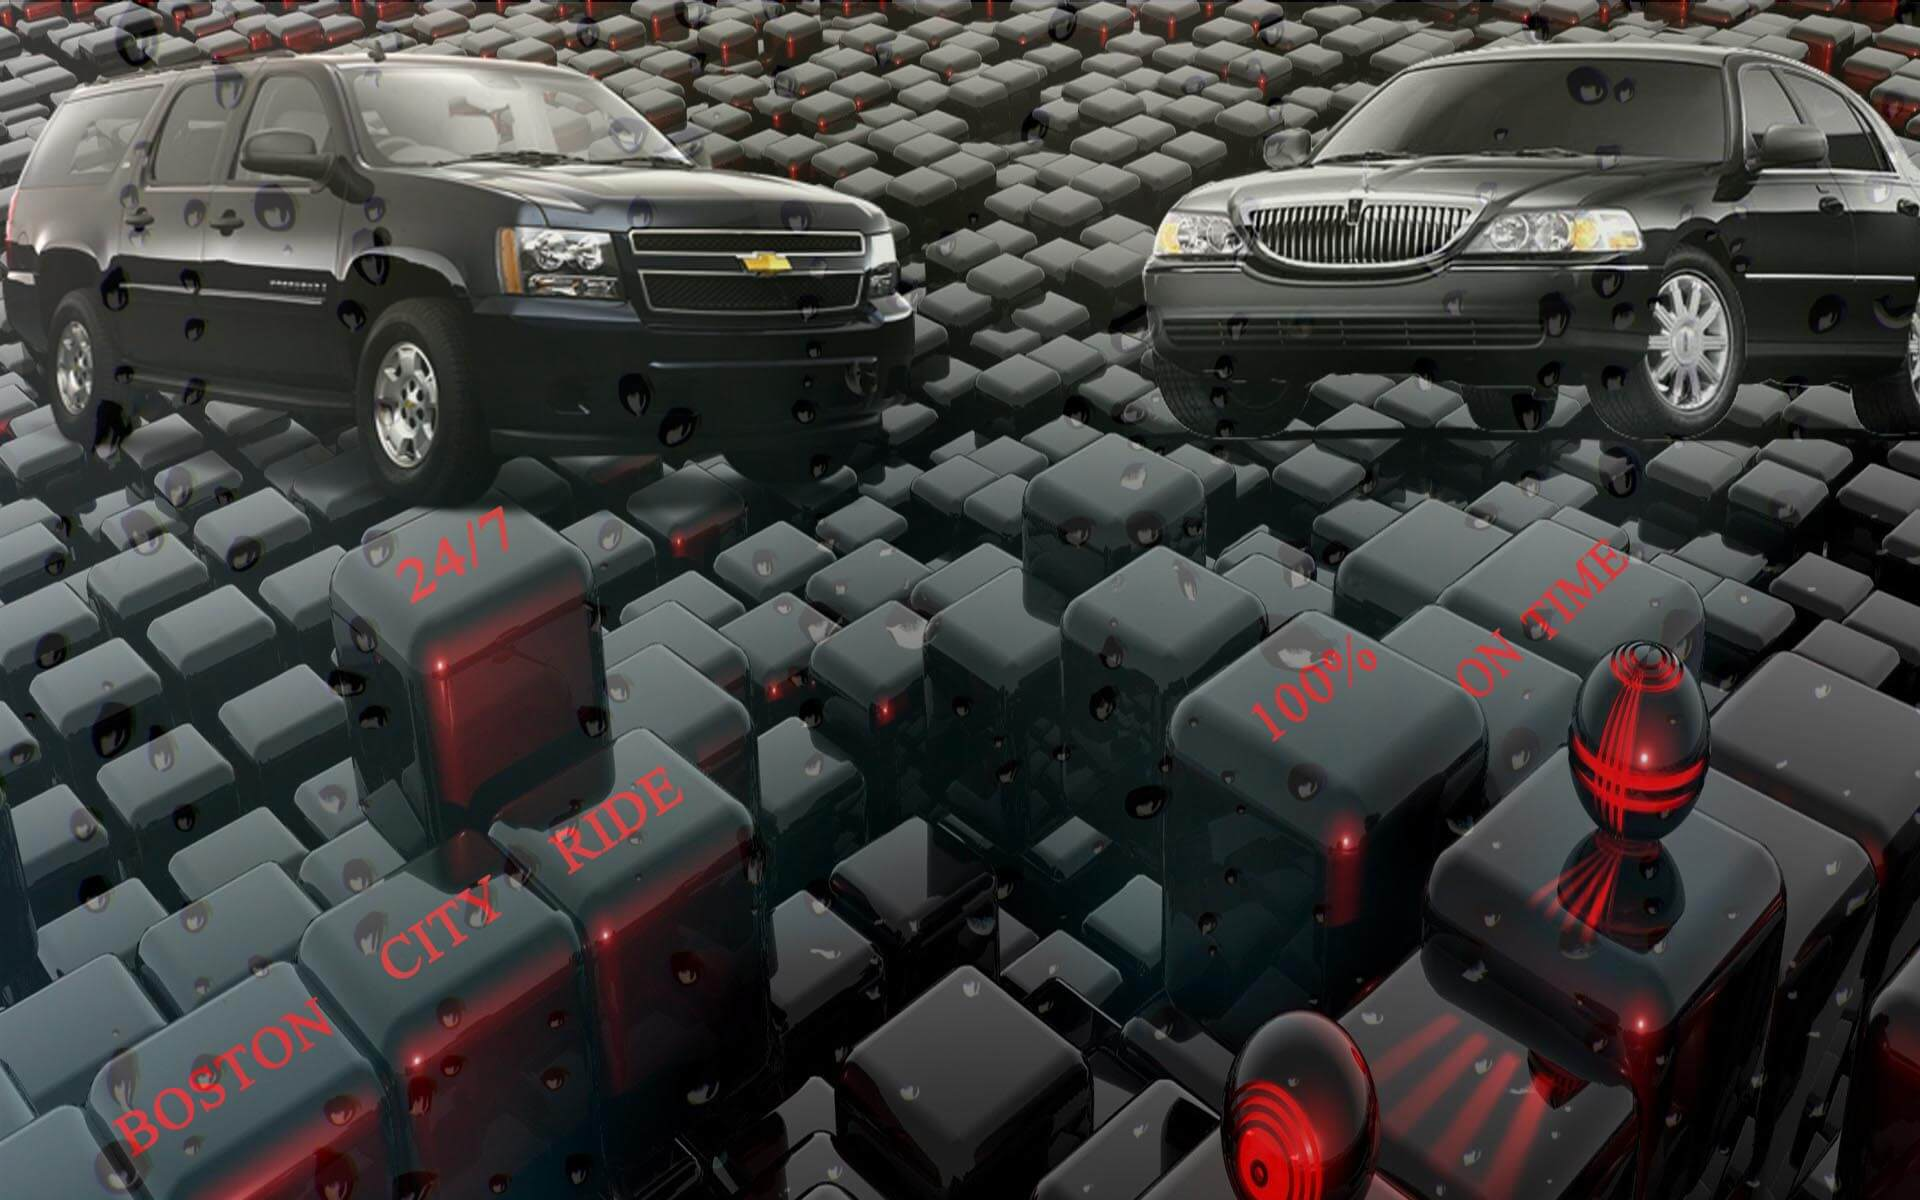 3d-Hd-Wallpapers Boston Car Service to Visit the biggest theater venues in Boston